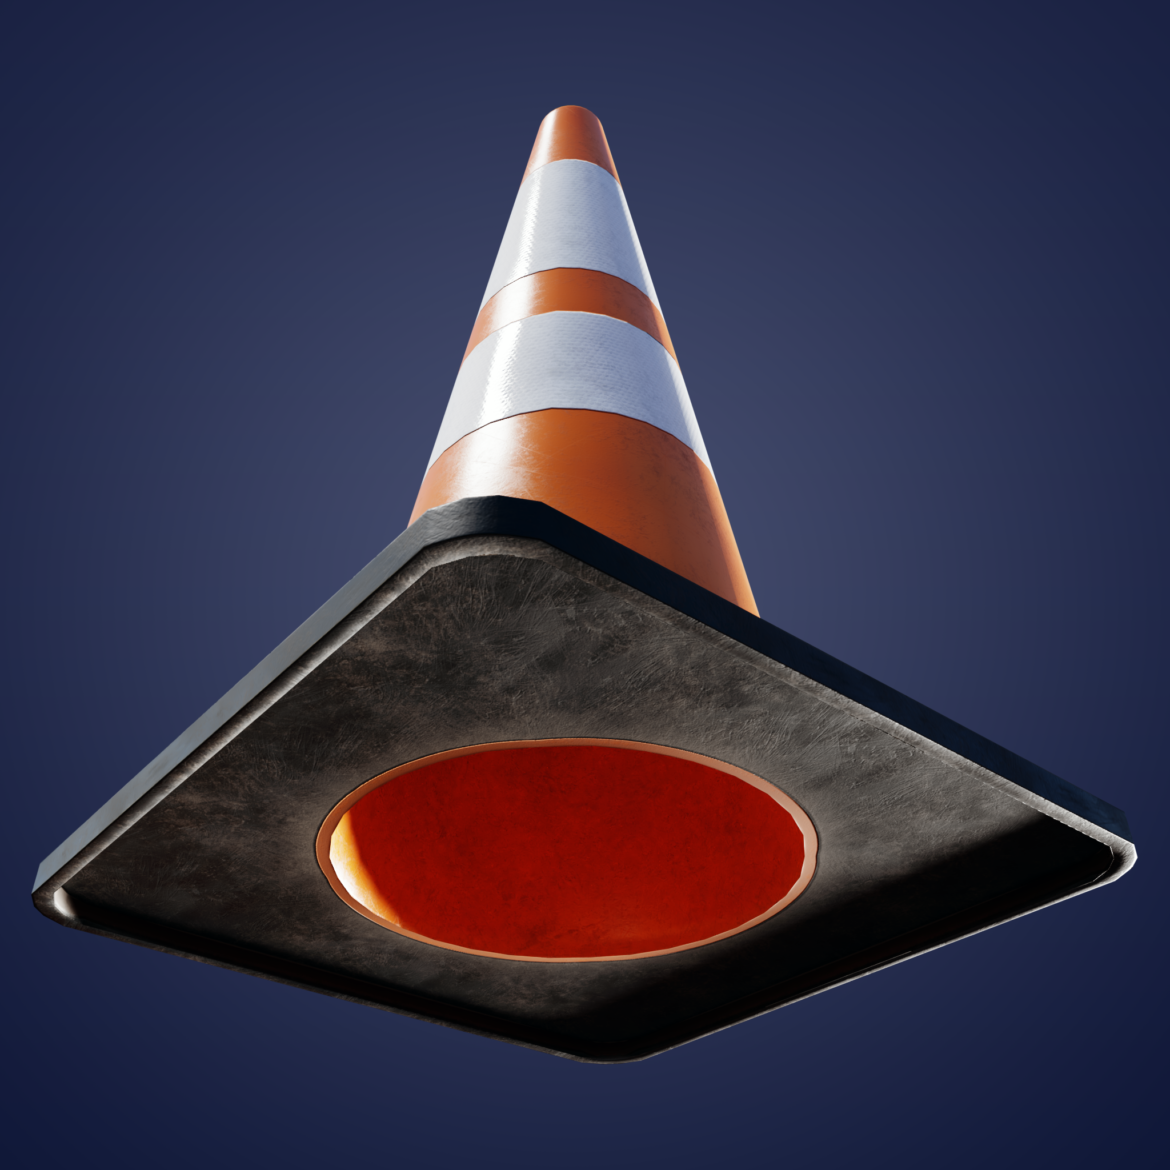 """A collection of 4 different coloured traffic cones optimized for use in video games or realtime applications. contains fbx and obj format meshes, as well as 4k png format texture maps for metallic roughness PBR material with AO. includes both opengl and directx normal maps, as well as prepacked metallic/smoothness texture for unity and prepacked… <a class=""""continue"""" href=""""https://www.flatpyramid.com/3d-models/architecture-3d-models/objects/traffic-cone-game-asset-multi-pack/"""">Continue Reading<span> Traffic Cone game asset multi-pack</span></a> <a class=""""continue"""" href=""""https://www.flatpyramid.com/3d-models/architecture-3d-models/objects/traffic-cone-game-asset-multi-pack/"""">Continue Reading<span> Traffic Cone game asset multi-pack</span></a>"""